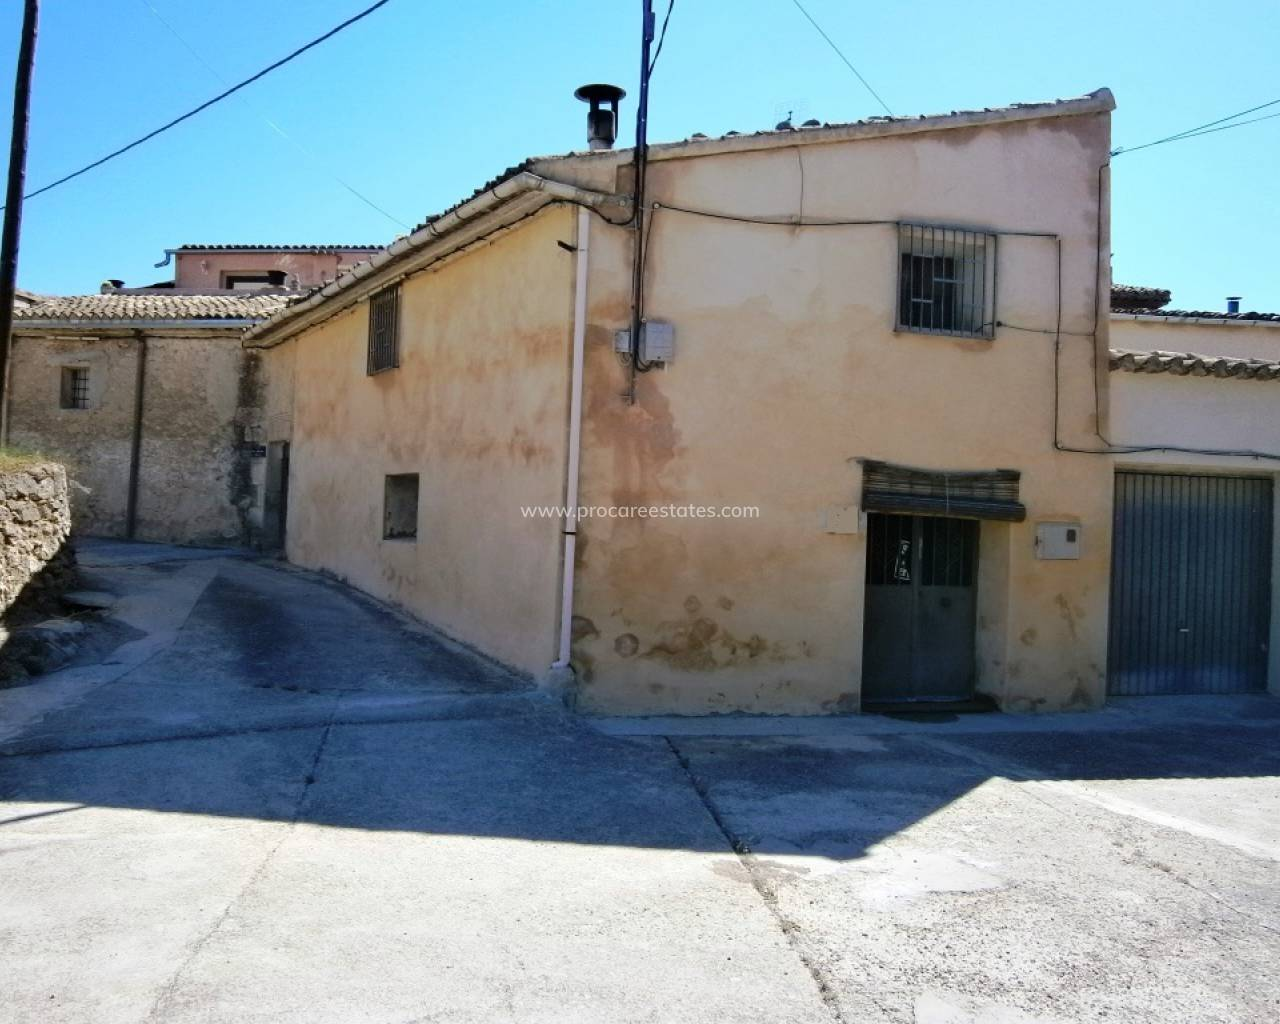 Country Property - Revente - Alcoy - Alcoy